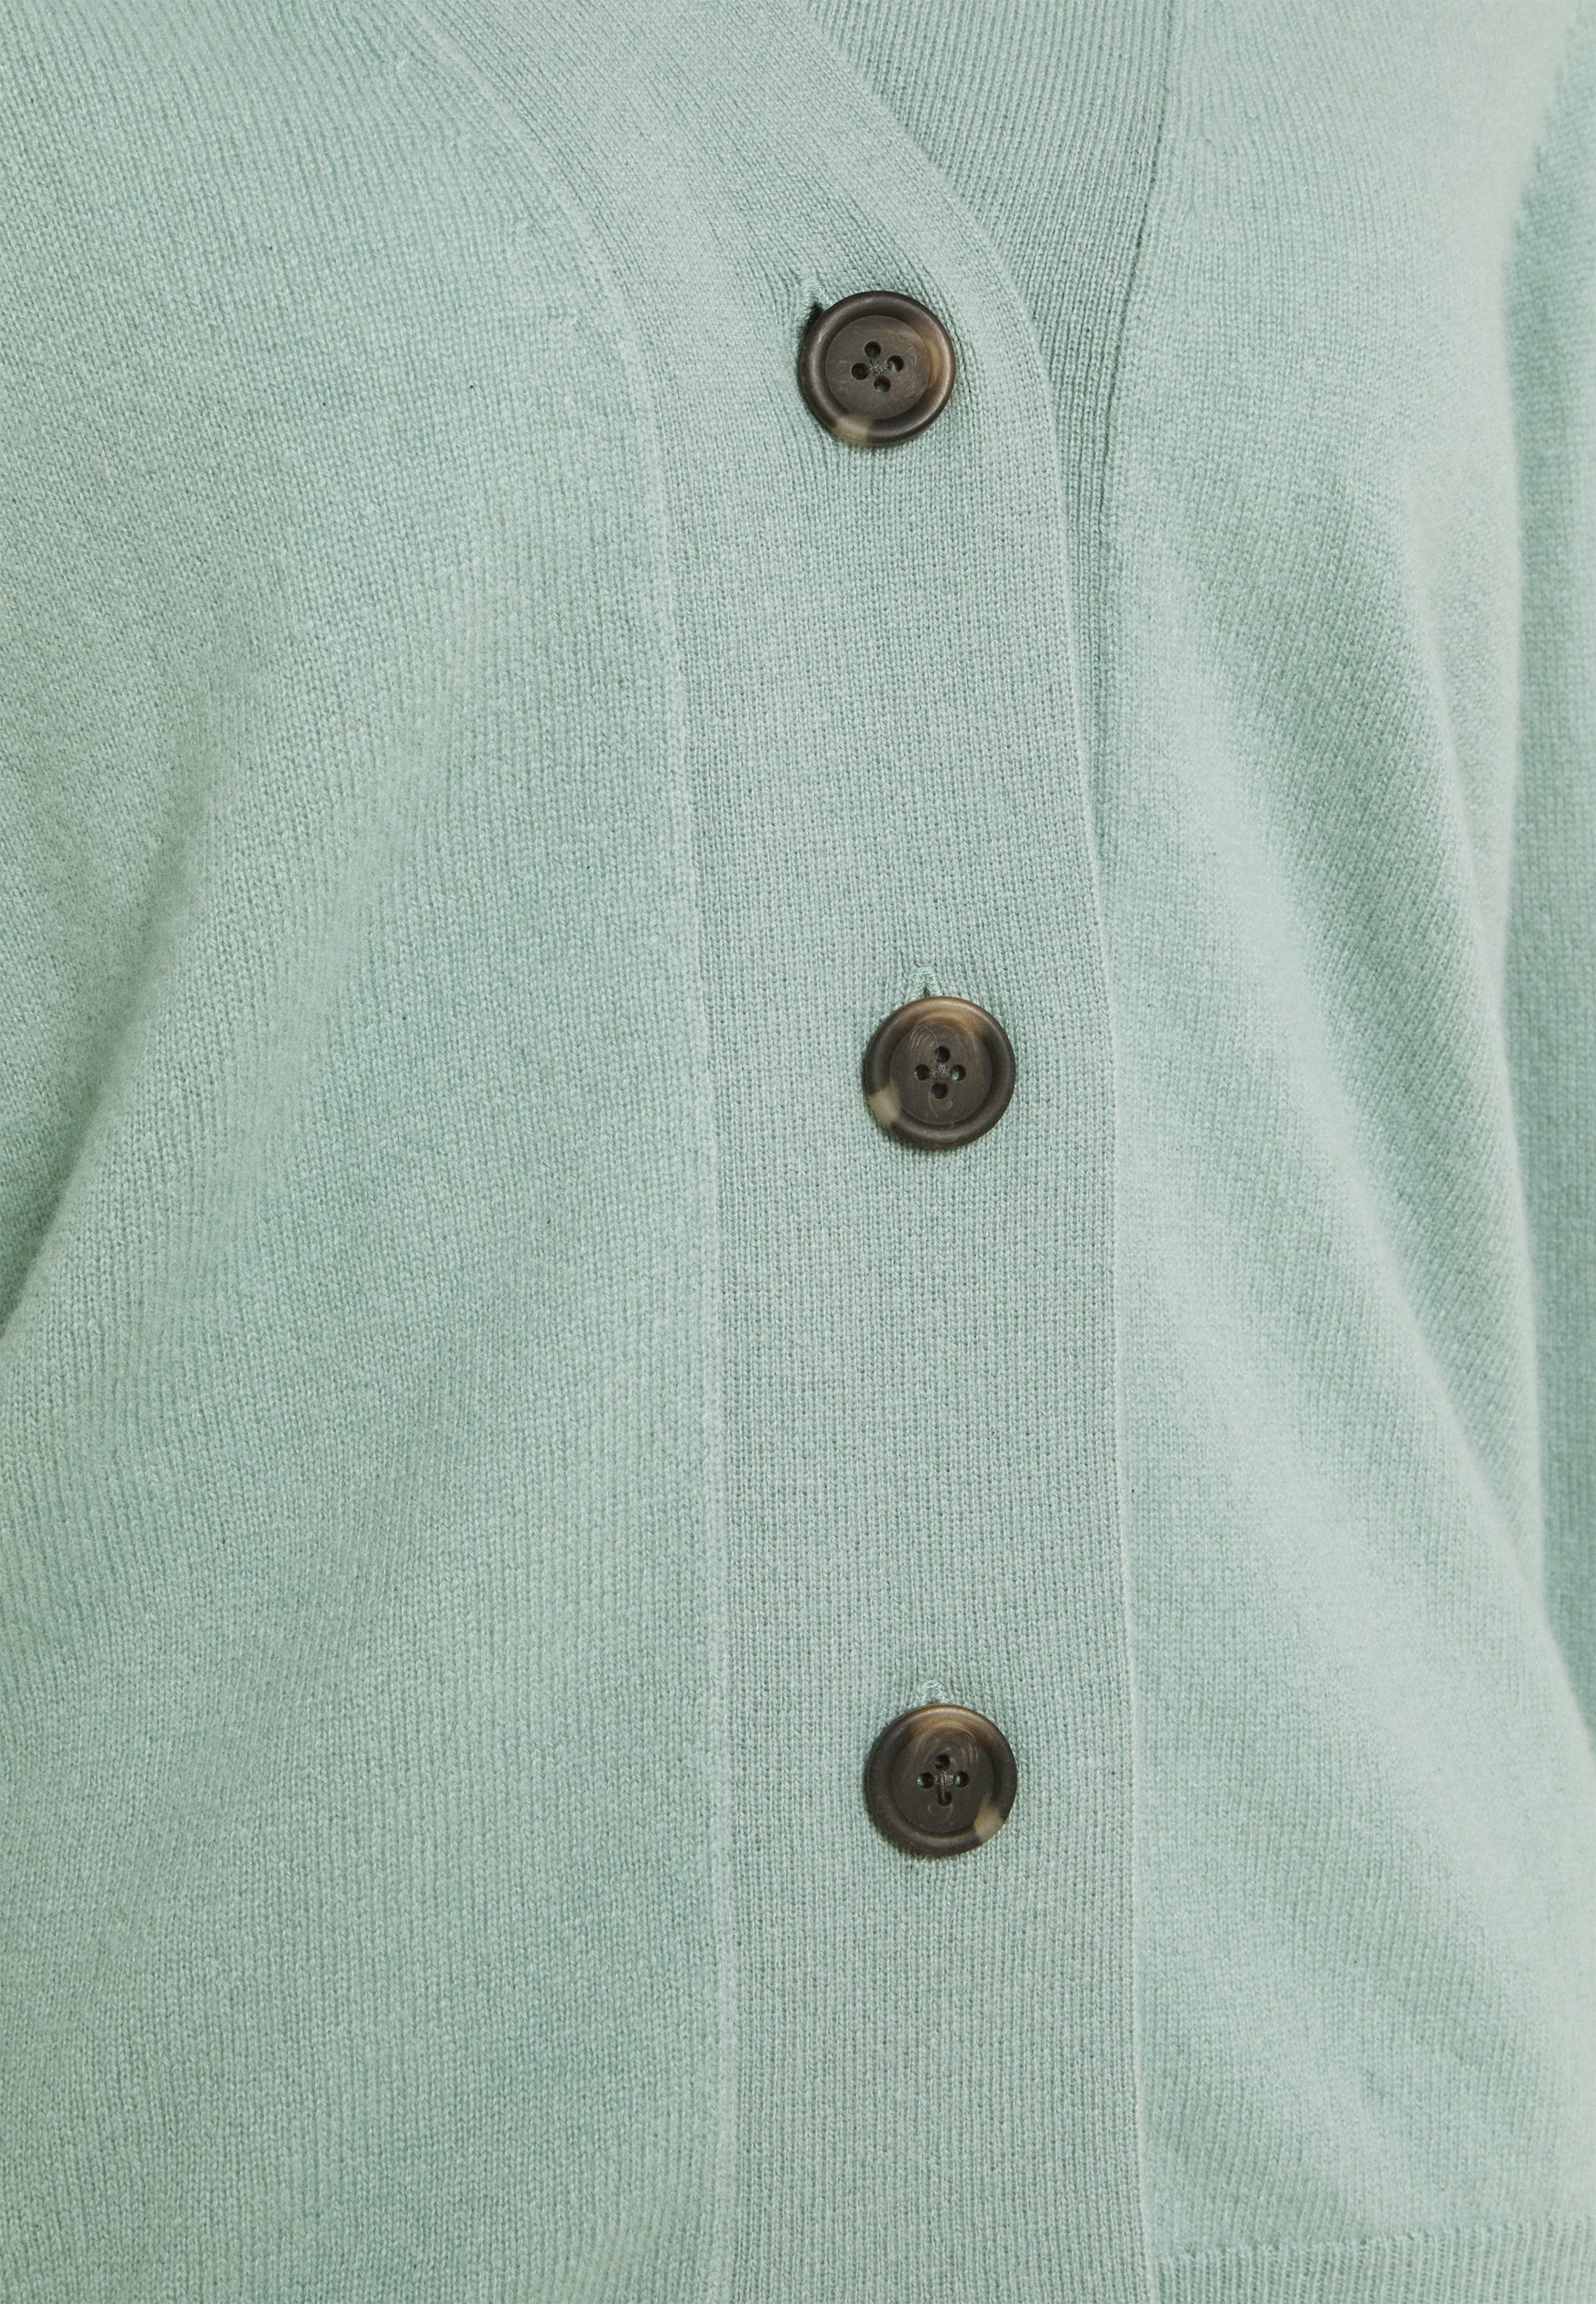 Online Cheapest Women's Clothing Davida Cashmere V NECK BUTTONS  Cardigan dusty green Nymb2GKoe